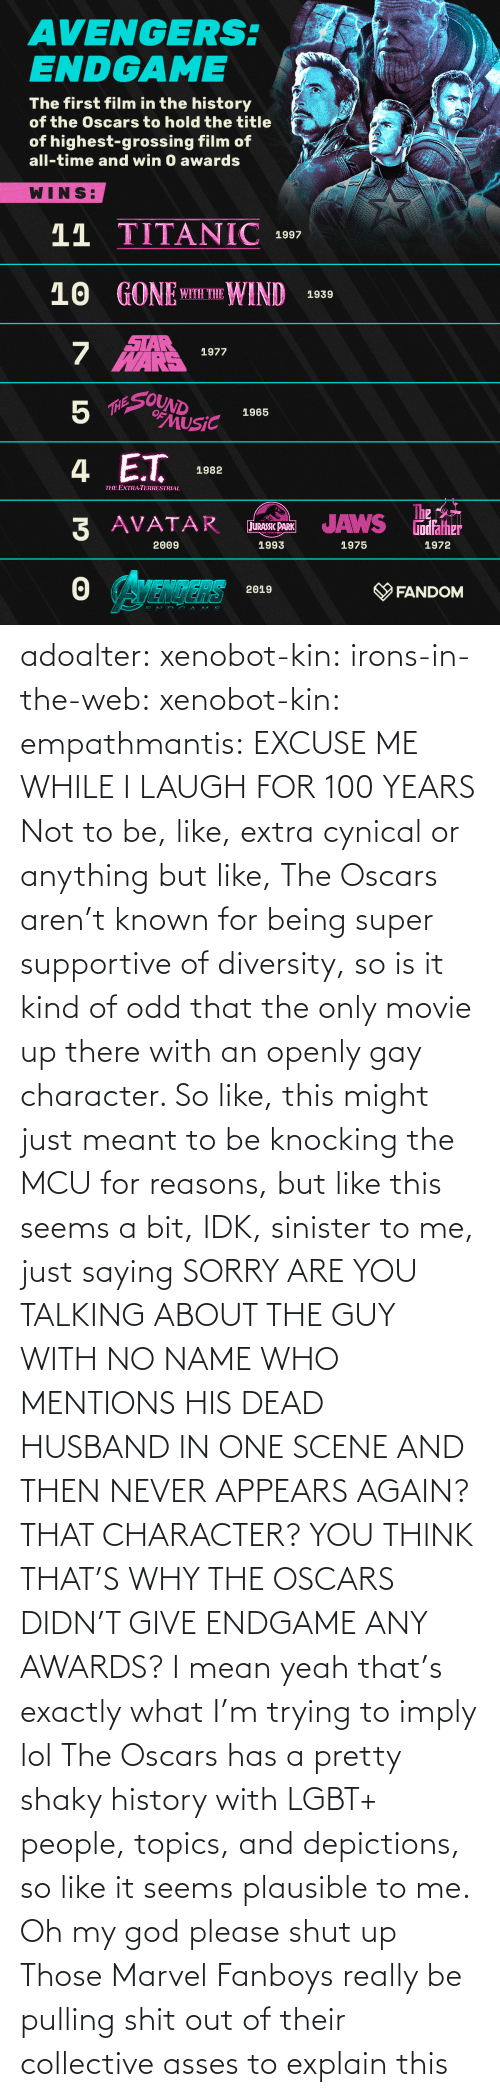 Husband: adoalter: xenobot-kin:   irons-in-the-web:  xenobot-kin:   empathmantis: EXCUSE ME WHILE I LAUGH FOR 100 YEARS Not to be, like, extra cynical or anything but like, The Oscars aren't known for being super supportive of diversity, so is it kind of odd that the only movie up there with an openly gay character. So like, this might just meant to be knocking the MCU for reasons, but like this seems a bit, IDK, sinister to me, just saying    SORRY ARE YOU TALKING ABOUT THE GUY WITH NO NAME WHO MENTIONS HIS DEAD HUSBAND IN ONE SCENE AND THEN NEVER APPEARS AGAIN? THAT CHARACTER? YOU THINK THAT'S WHY THE OSCARS DIDN'T GIVE ENDGAME ANY AWARDS?  I mean yeah that's exactly what I'm trying to imply lol The Oscars has a pretty shaky history with LGBT+ people, topics, and depictions, so like it seems plausible to me.     Oh my god please shut up    Those Marvel Fanboys really be pulling shit out of their collective asses to explain this